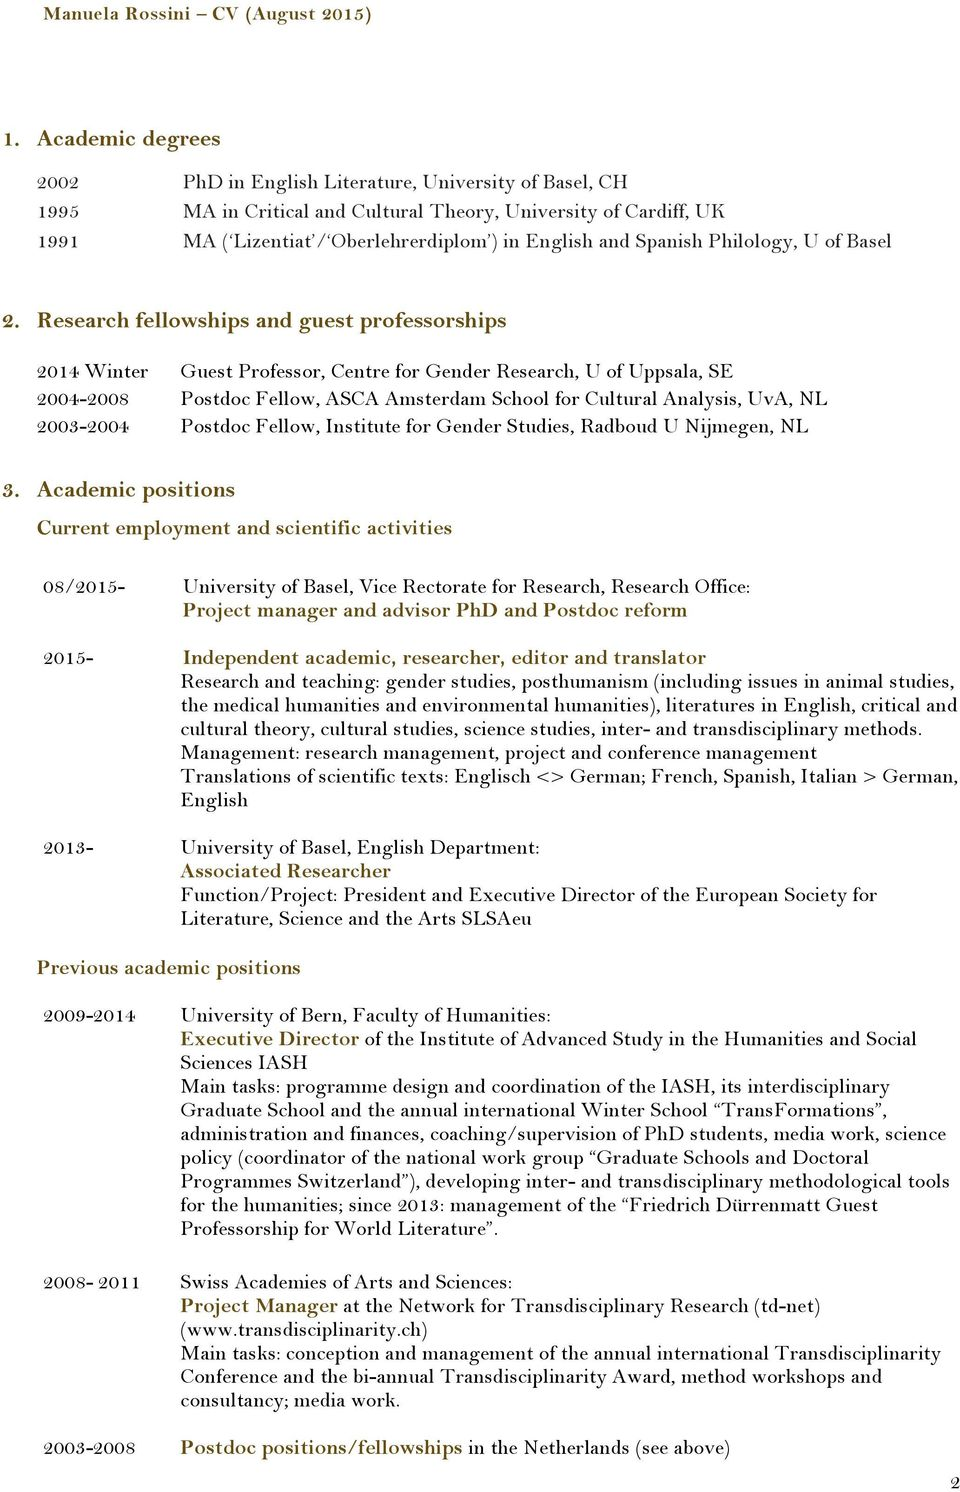 Research fellowships and guest professorships 2014 Winter Guest Professor, Centre for Gender Research, U of Uppsala, SE 2004-2008 Postdoc Fellow, ASCA Amsterdam School for Cultural Analysis, UvA, NL